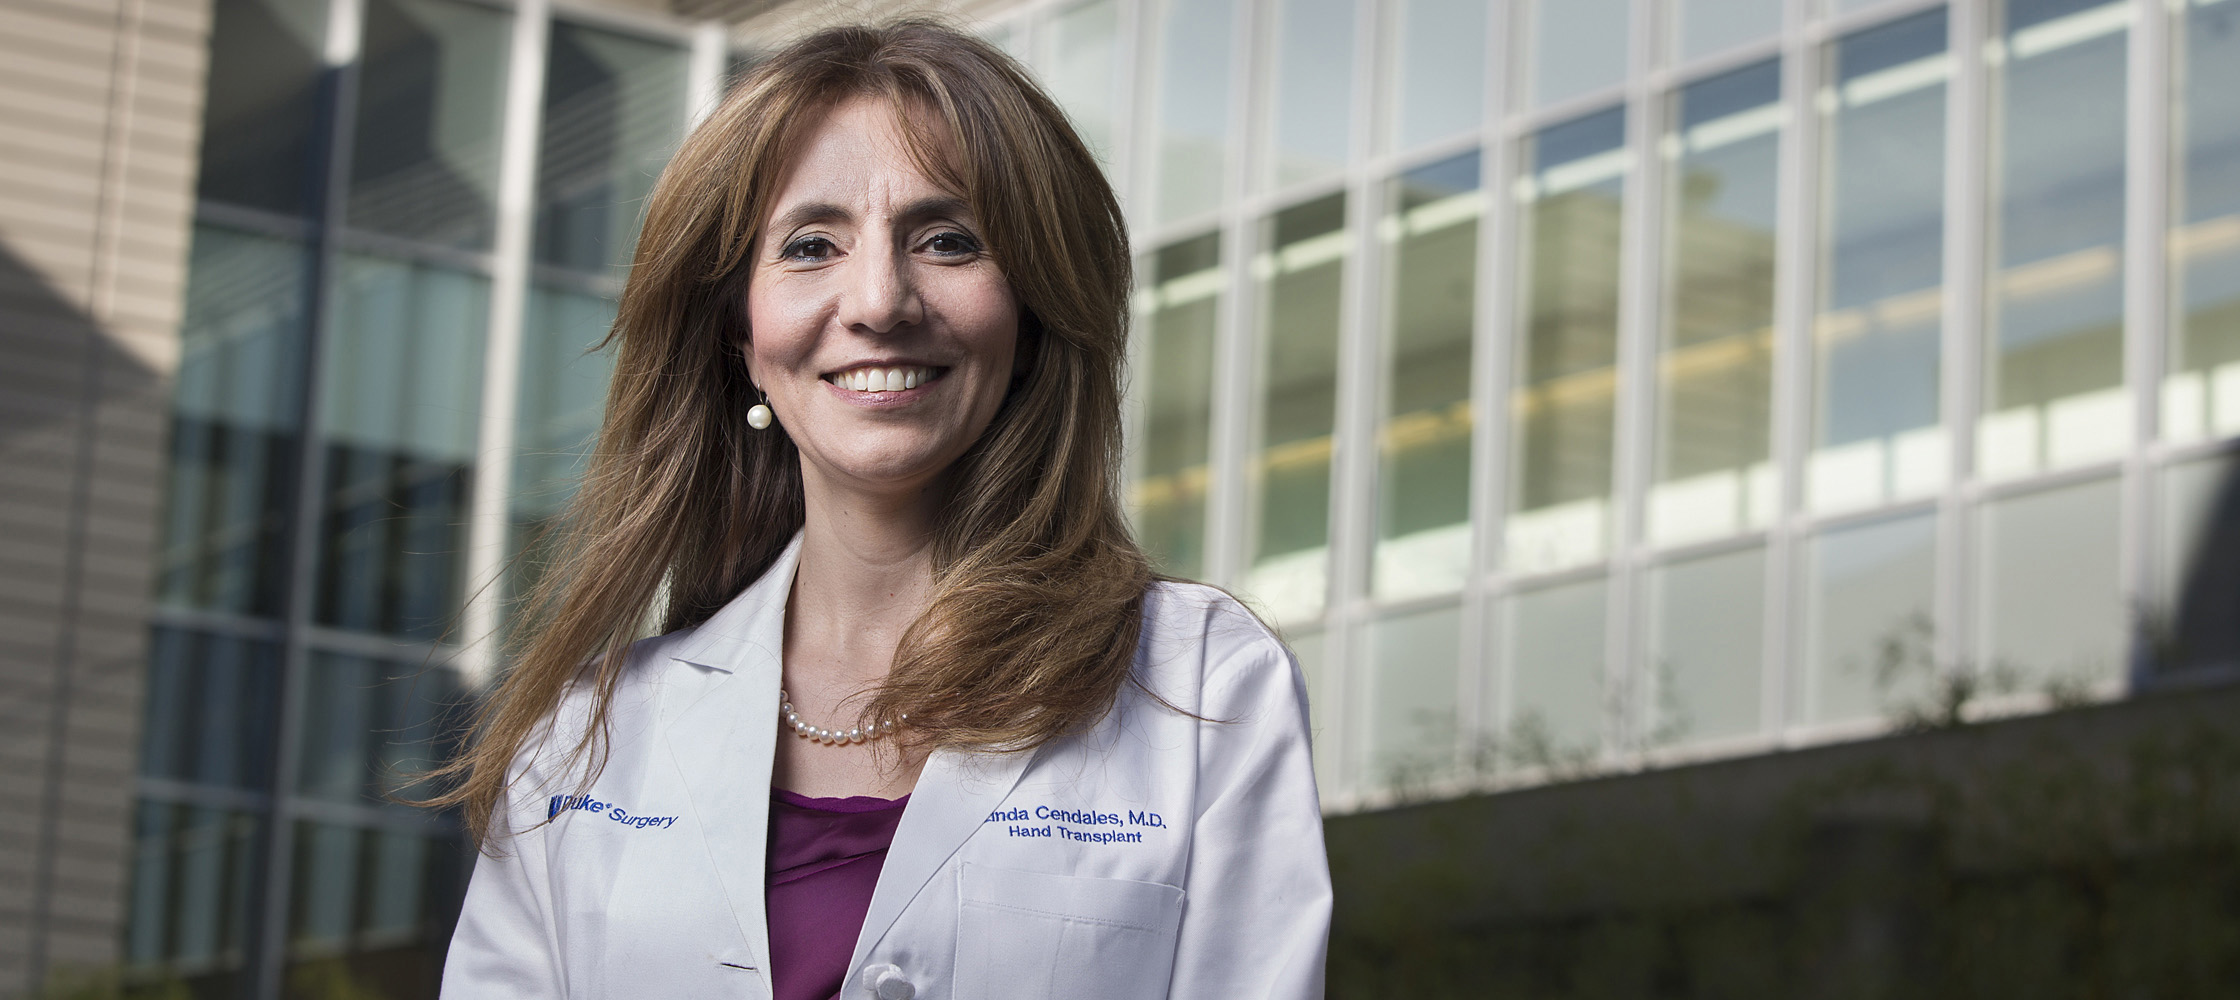 Duke is one of the few centers in the country offer hand transplants as part of a research study.